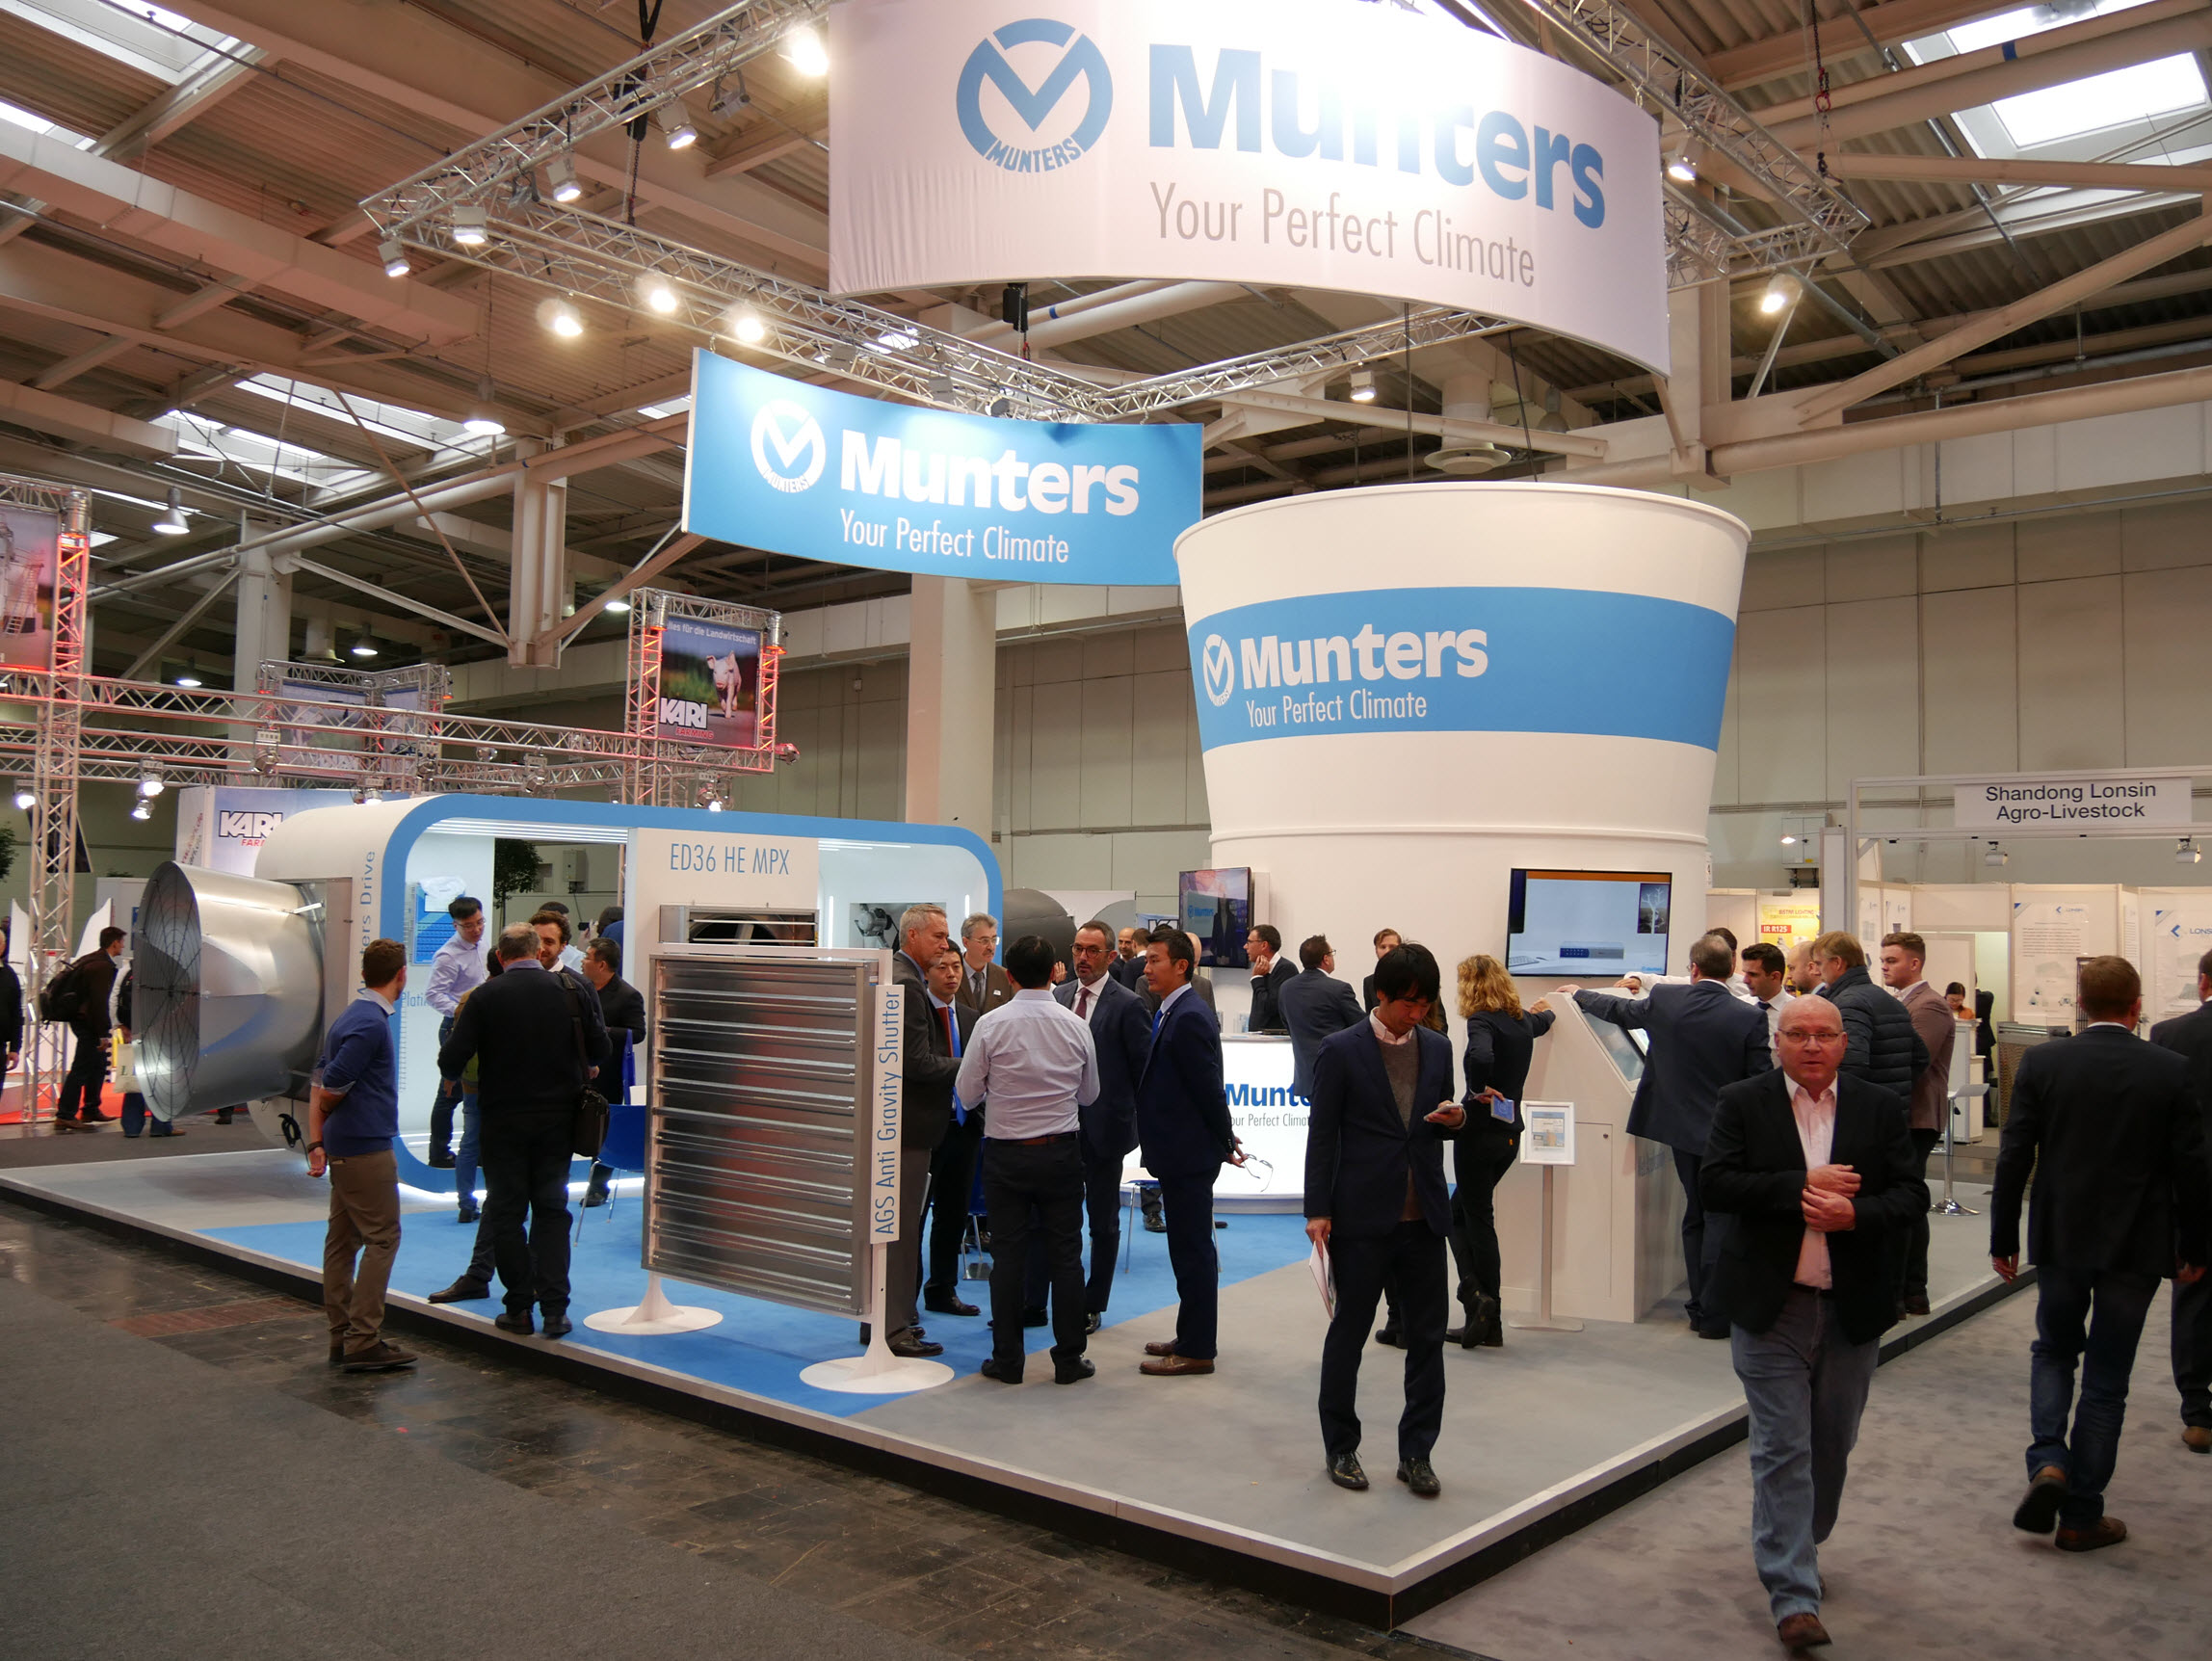 Relationships at EuroTier 2016